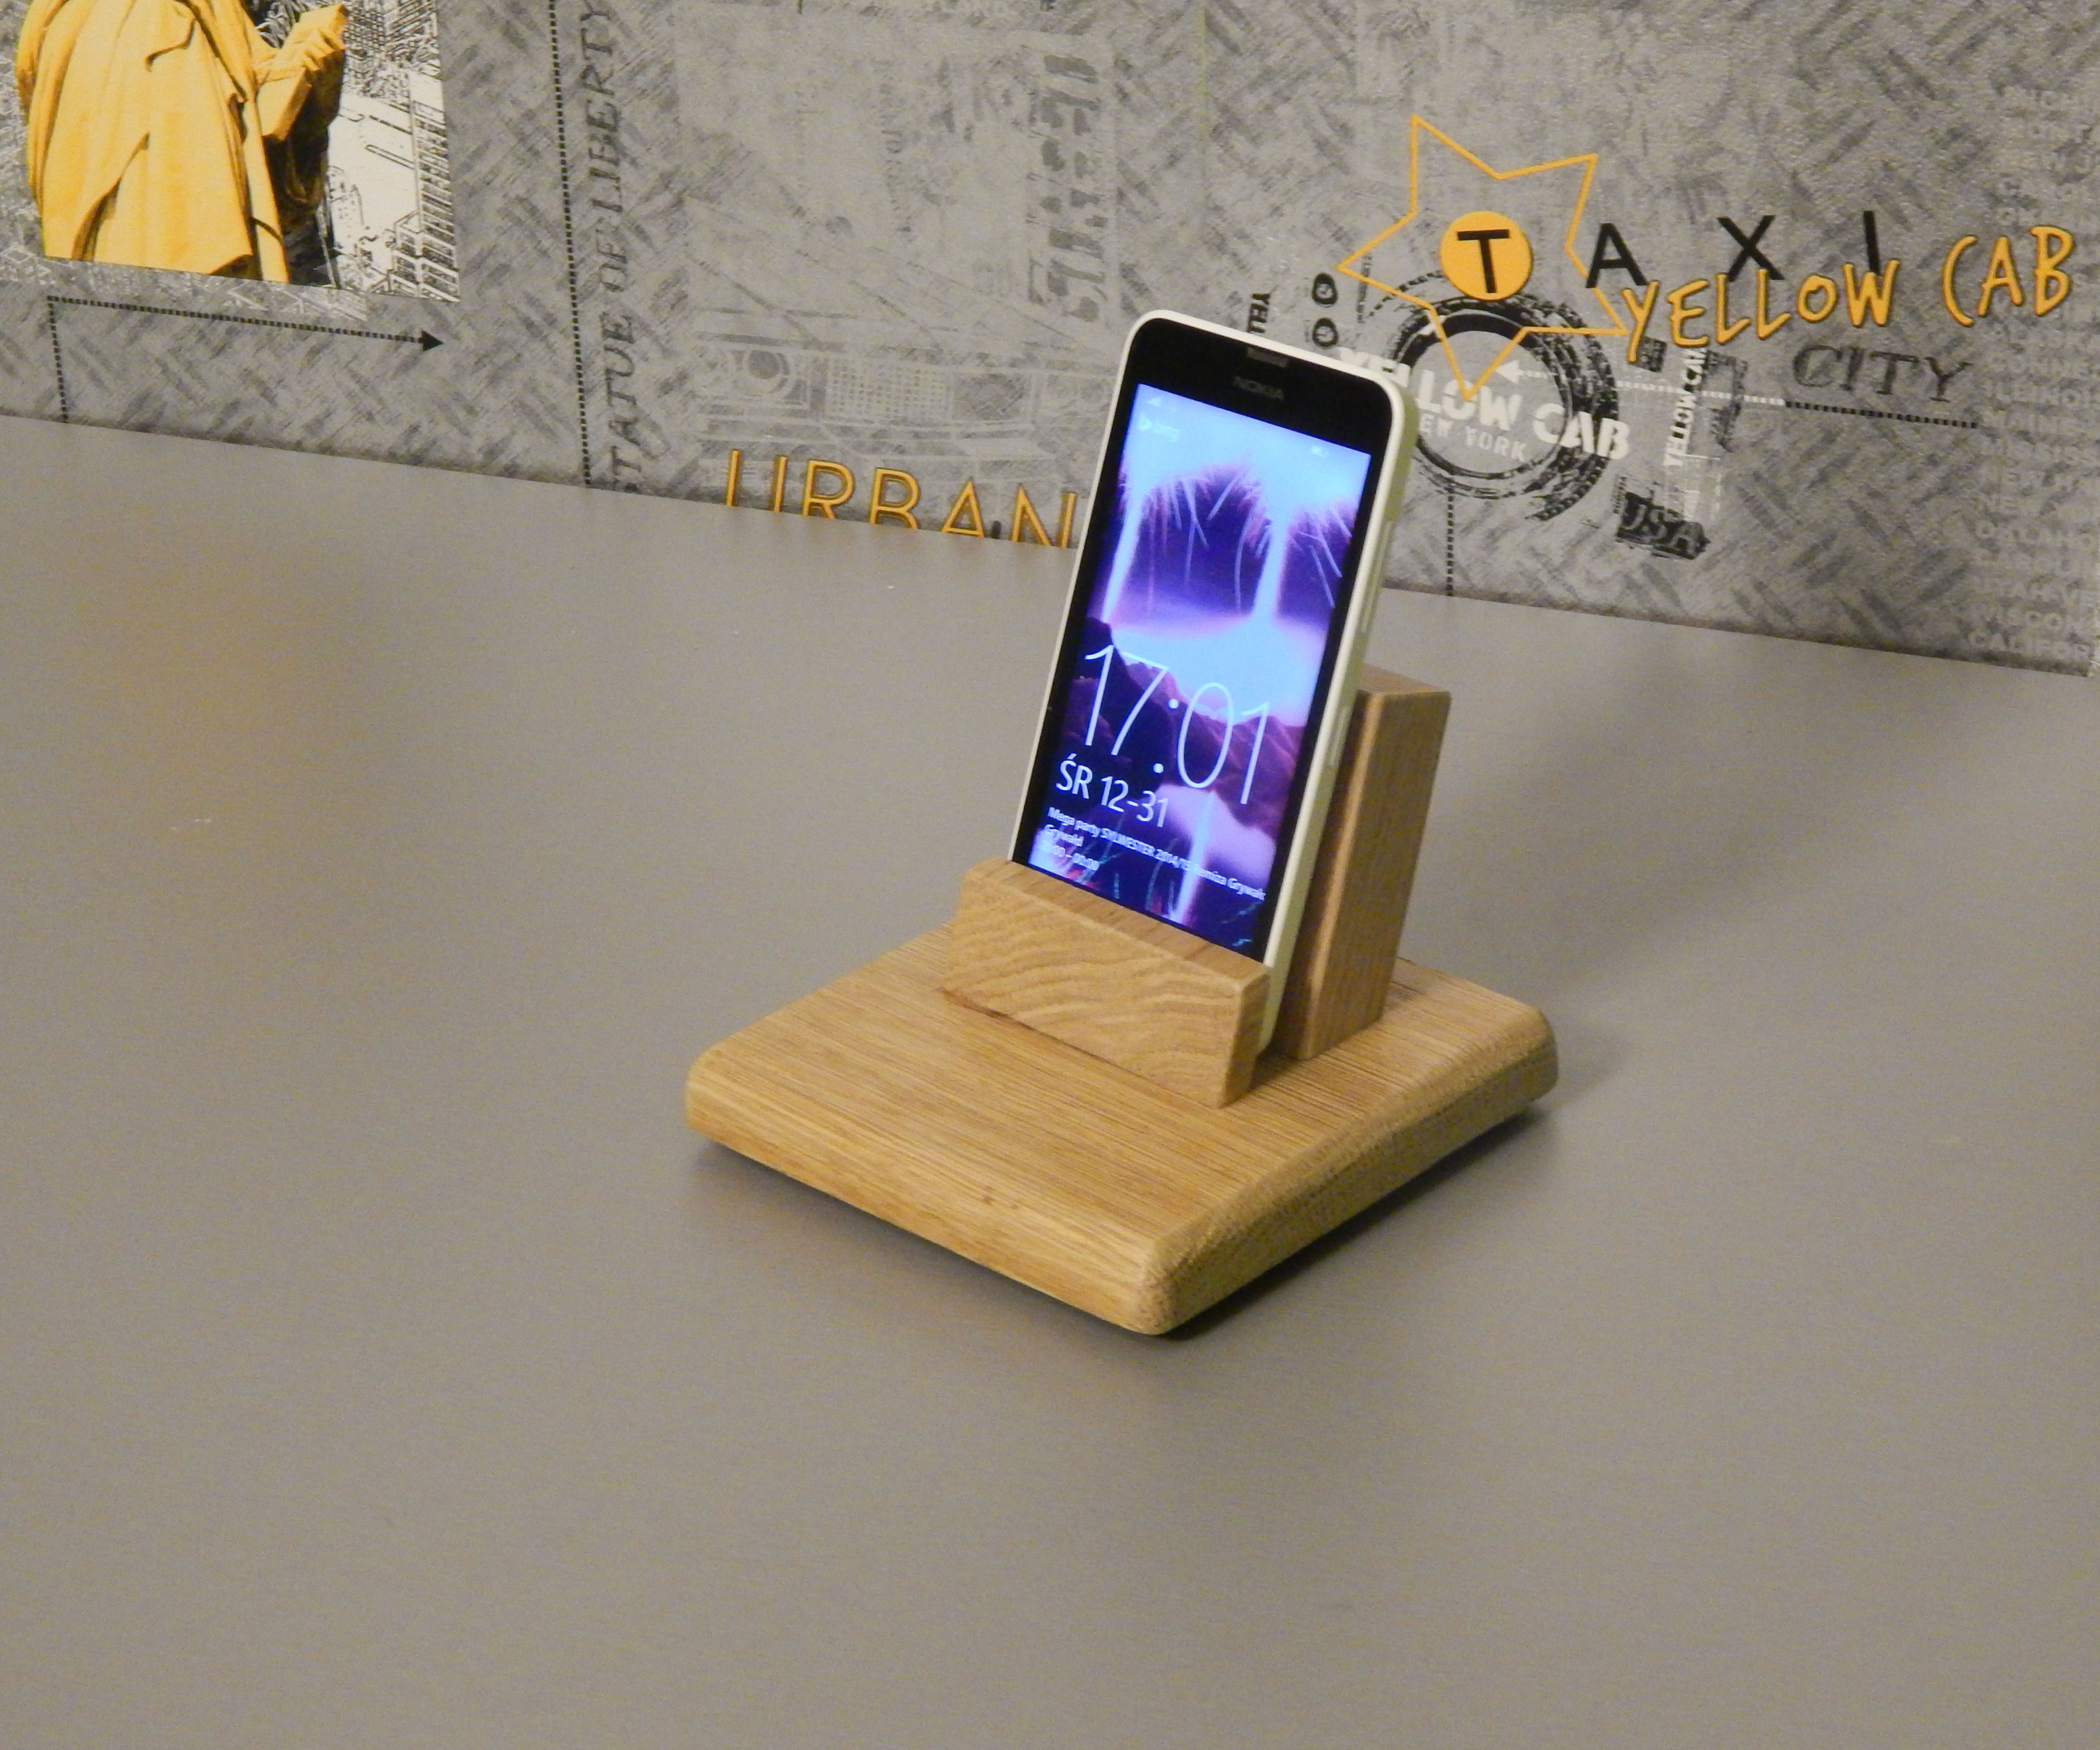 Easy to make smartphone dock